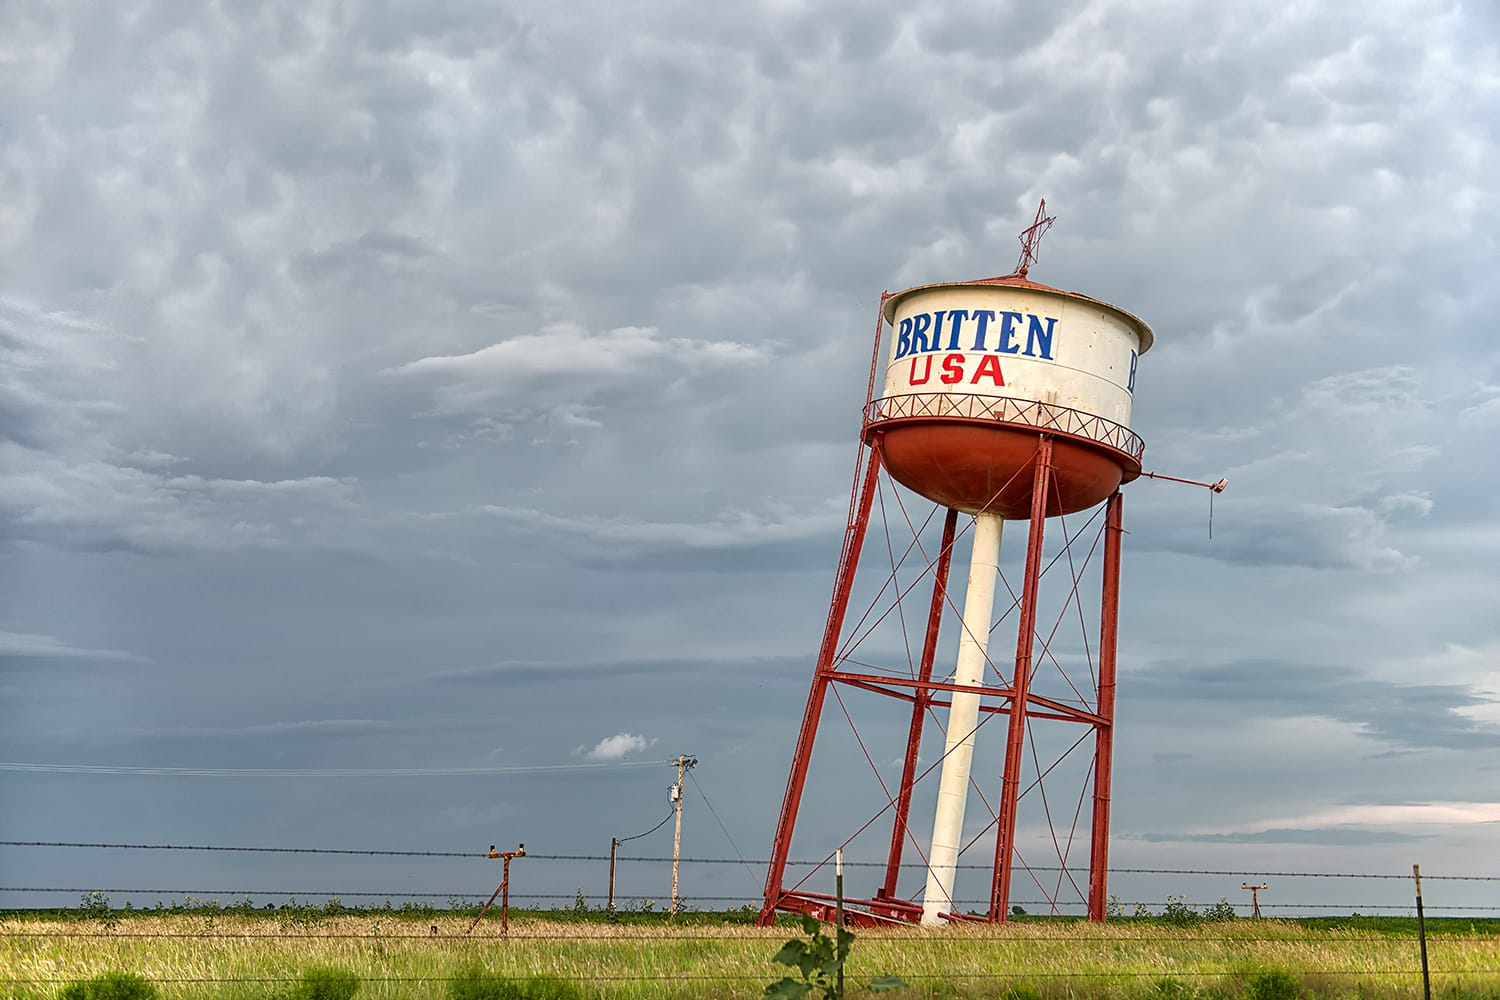 Leaning Water Tower of Texas. Famous attraction on Route 66